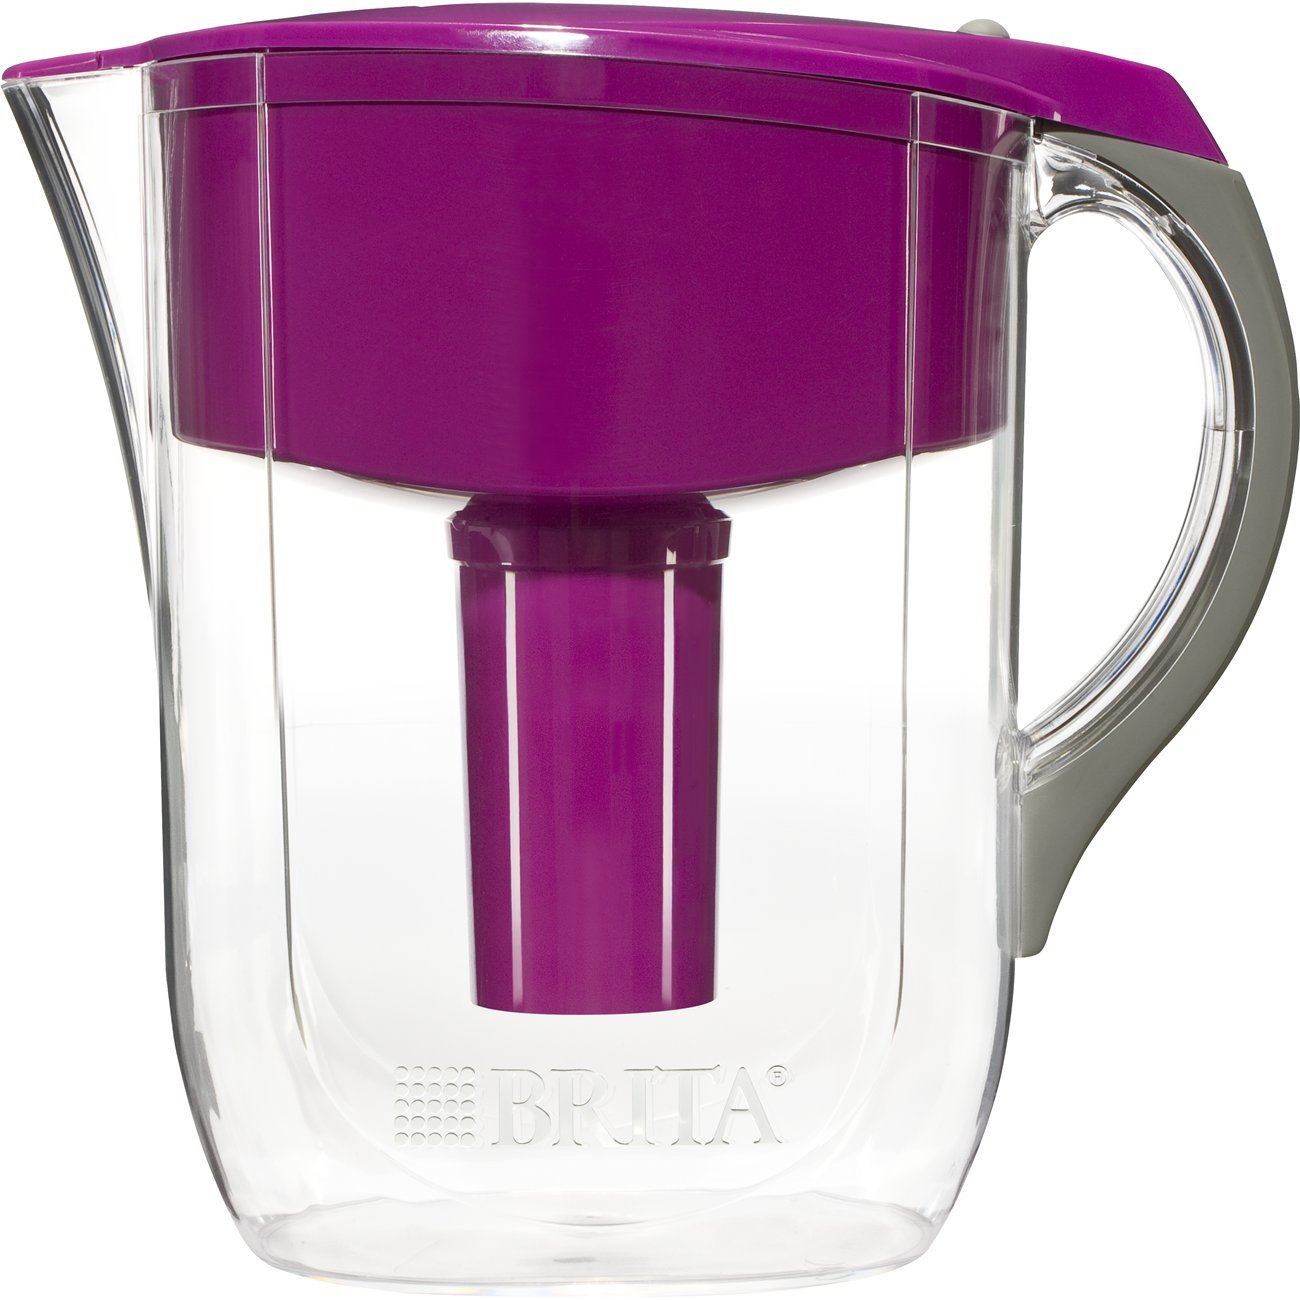 Brita Large 10 Cup Water Filter Pitcher with 1 Standard Filter, BPA Free - Grand, Violet